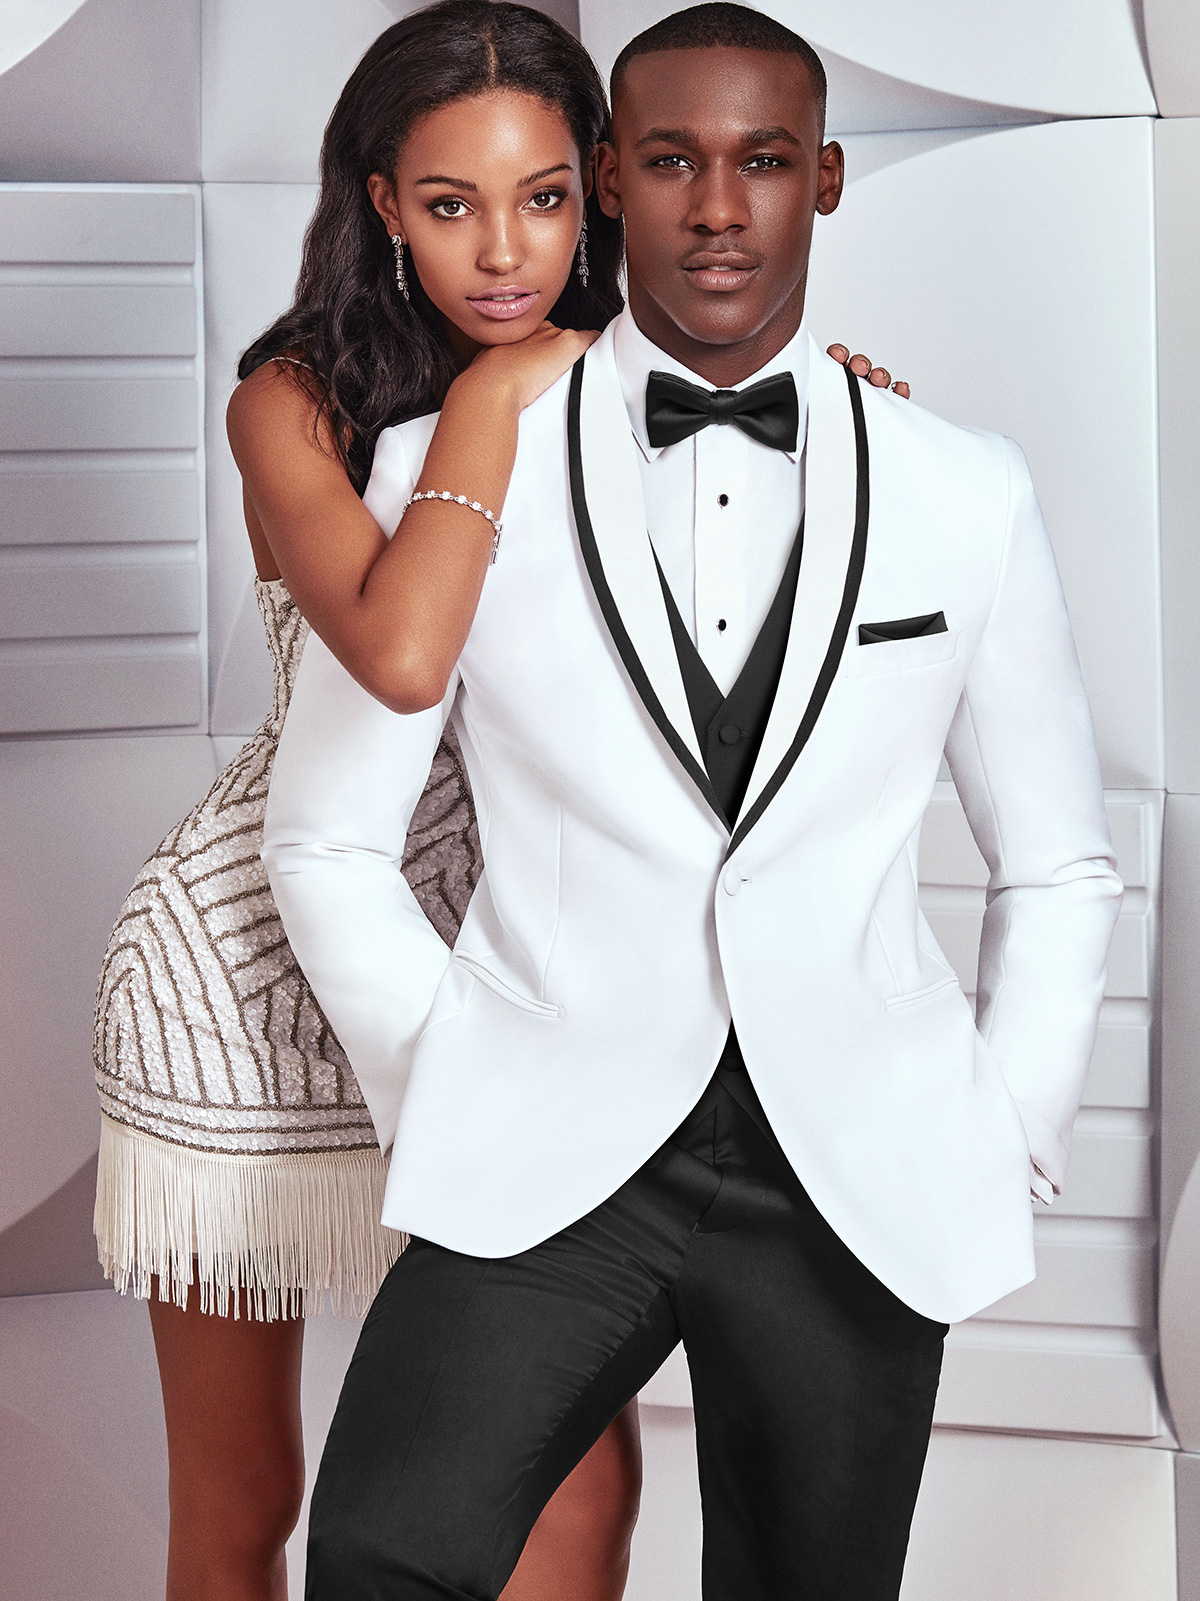 White Prom Tuxedo Waverly|DimitraDesigns.com